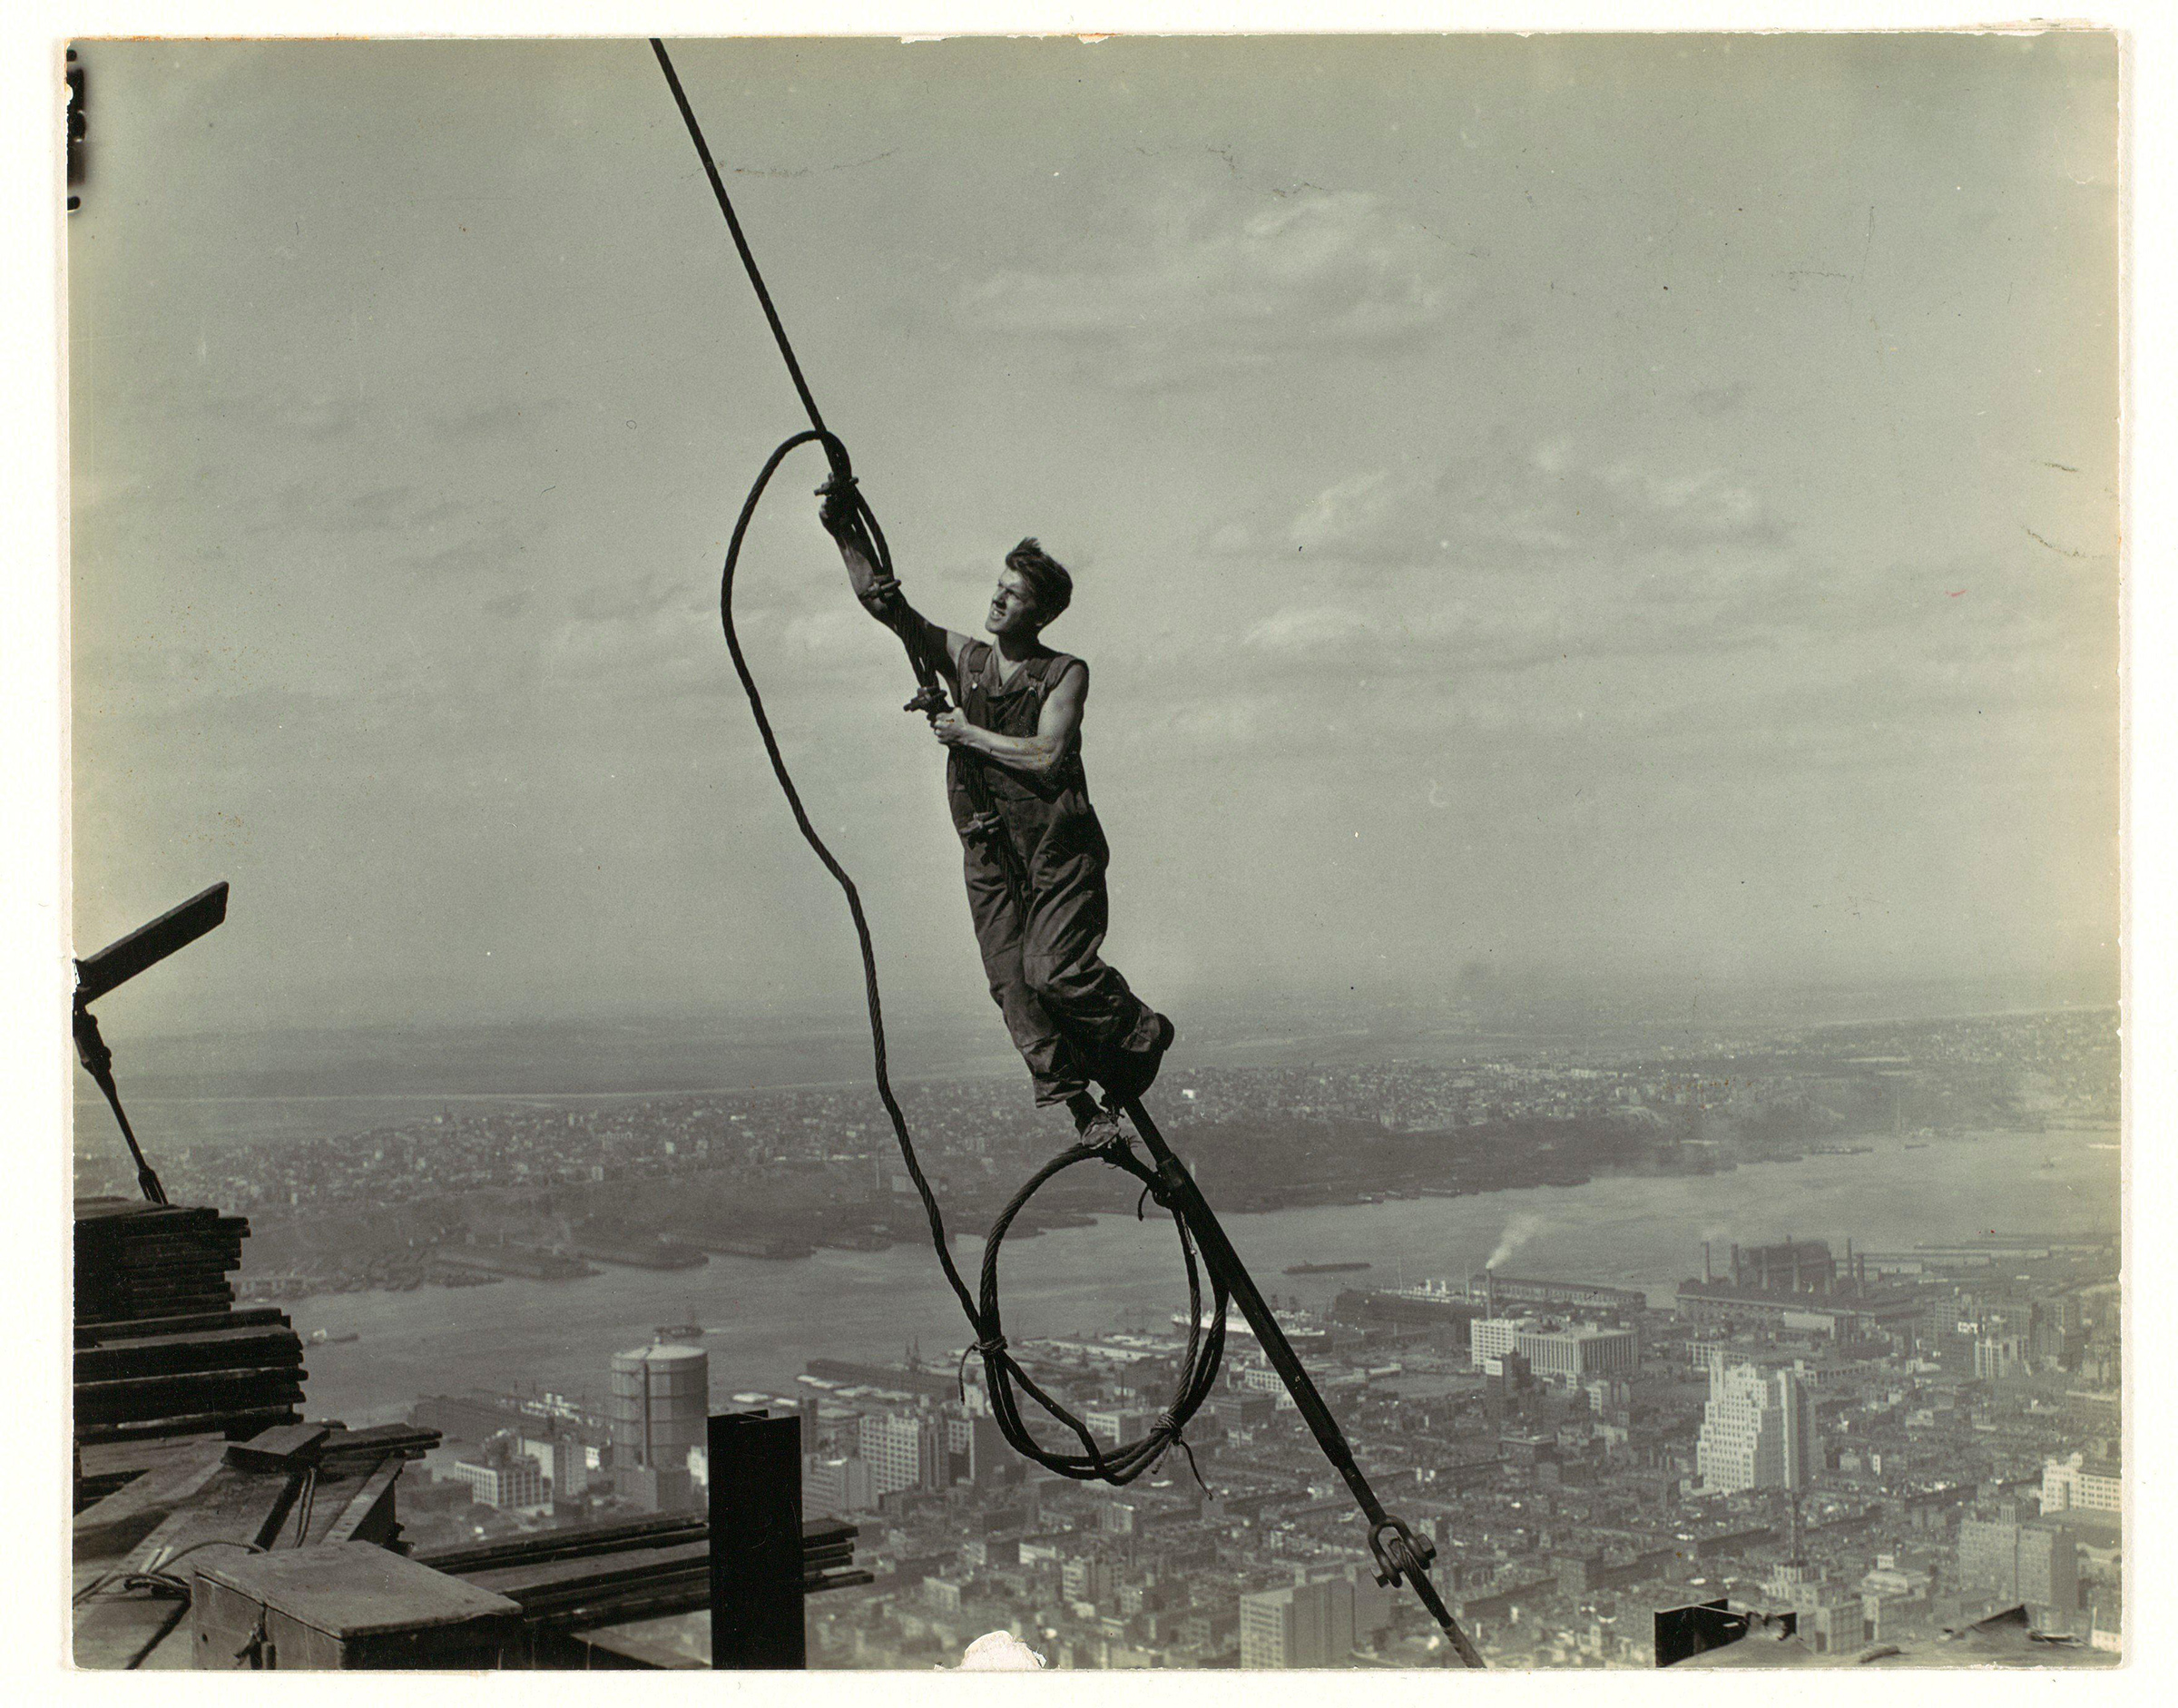 High up on the Empire State Building, 1930